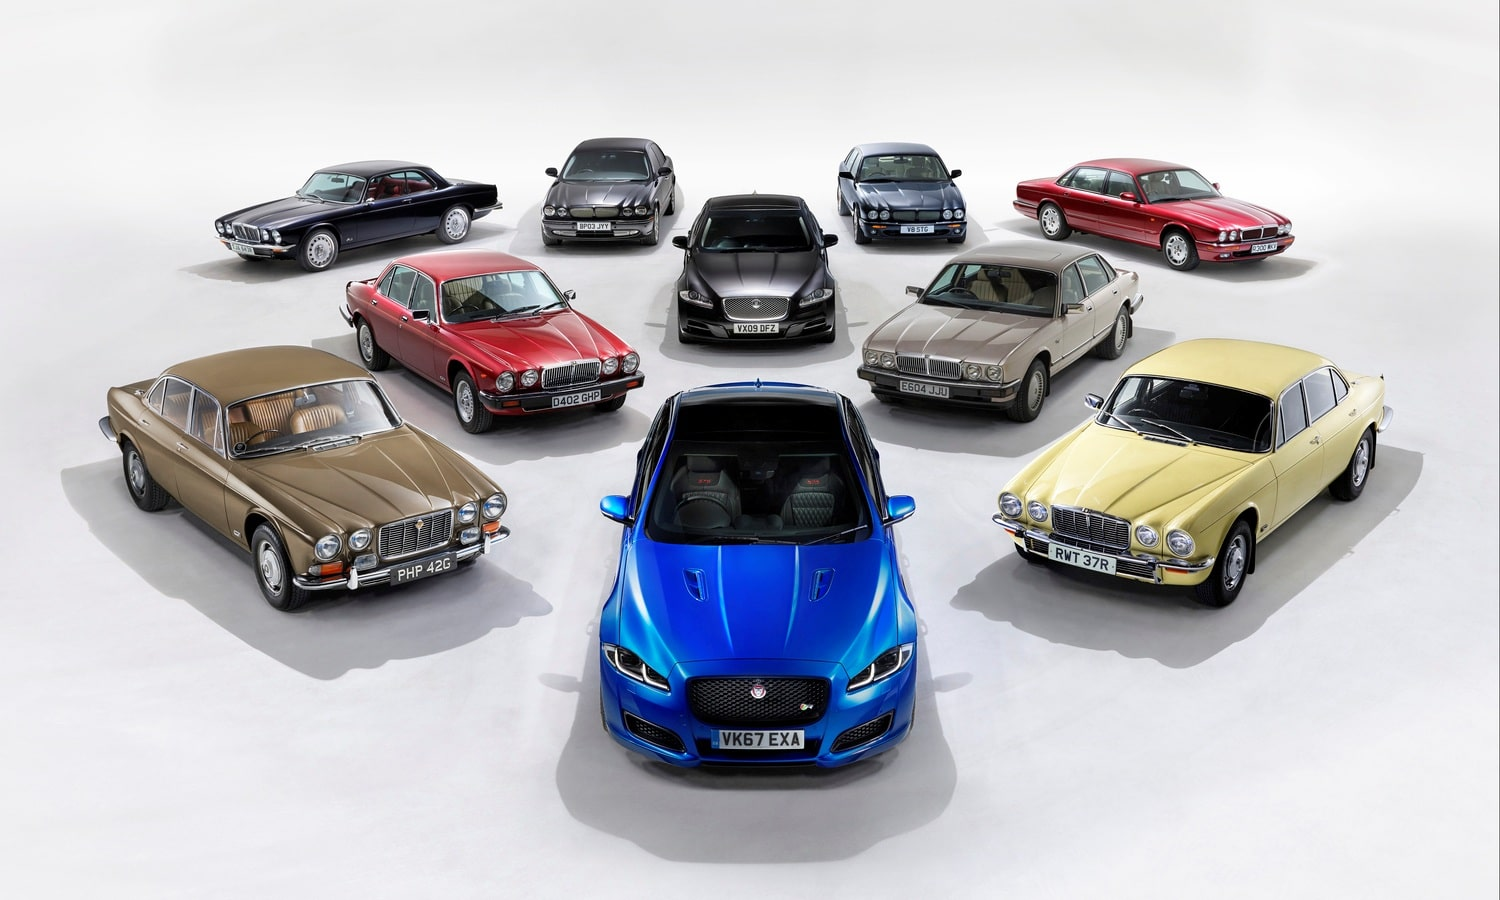 50 years of Jaguar XJ Heritage Range